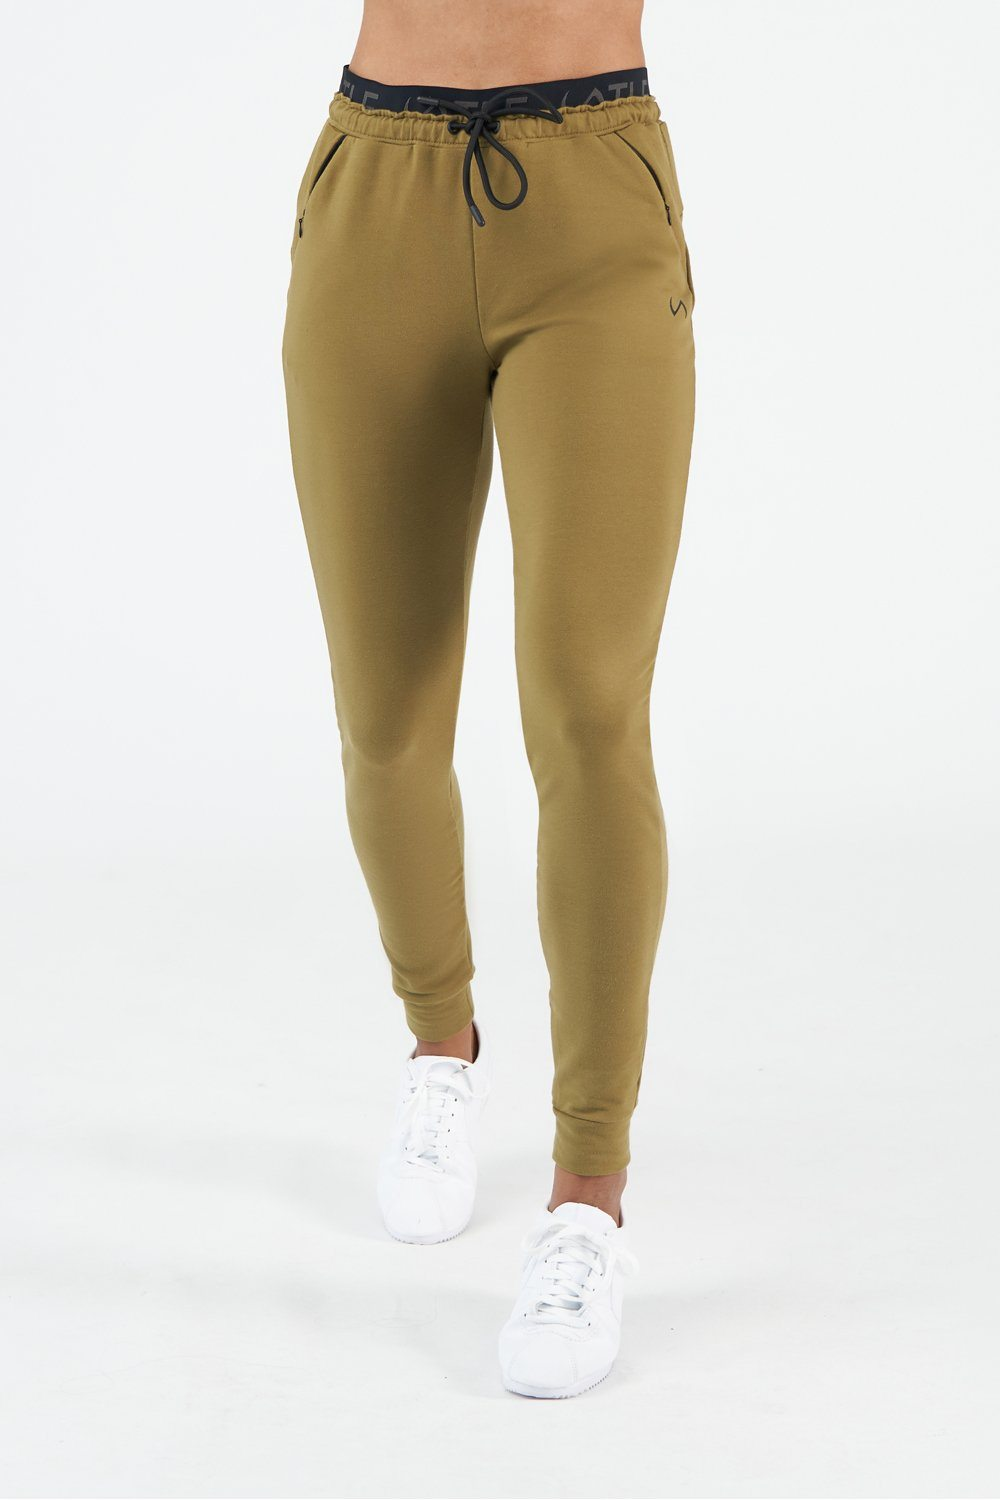 TLF All-Day Ease Comfy Joggers - Women's - TLF Apparel | Take Life Further